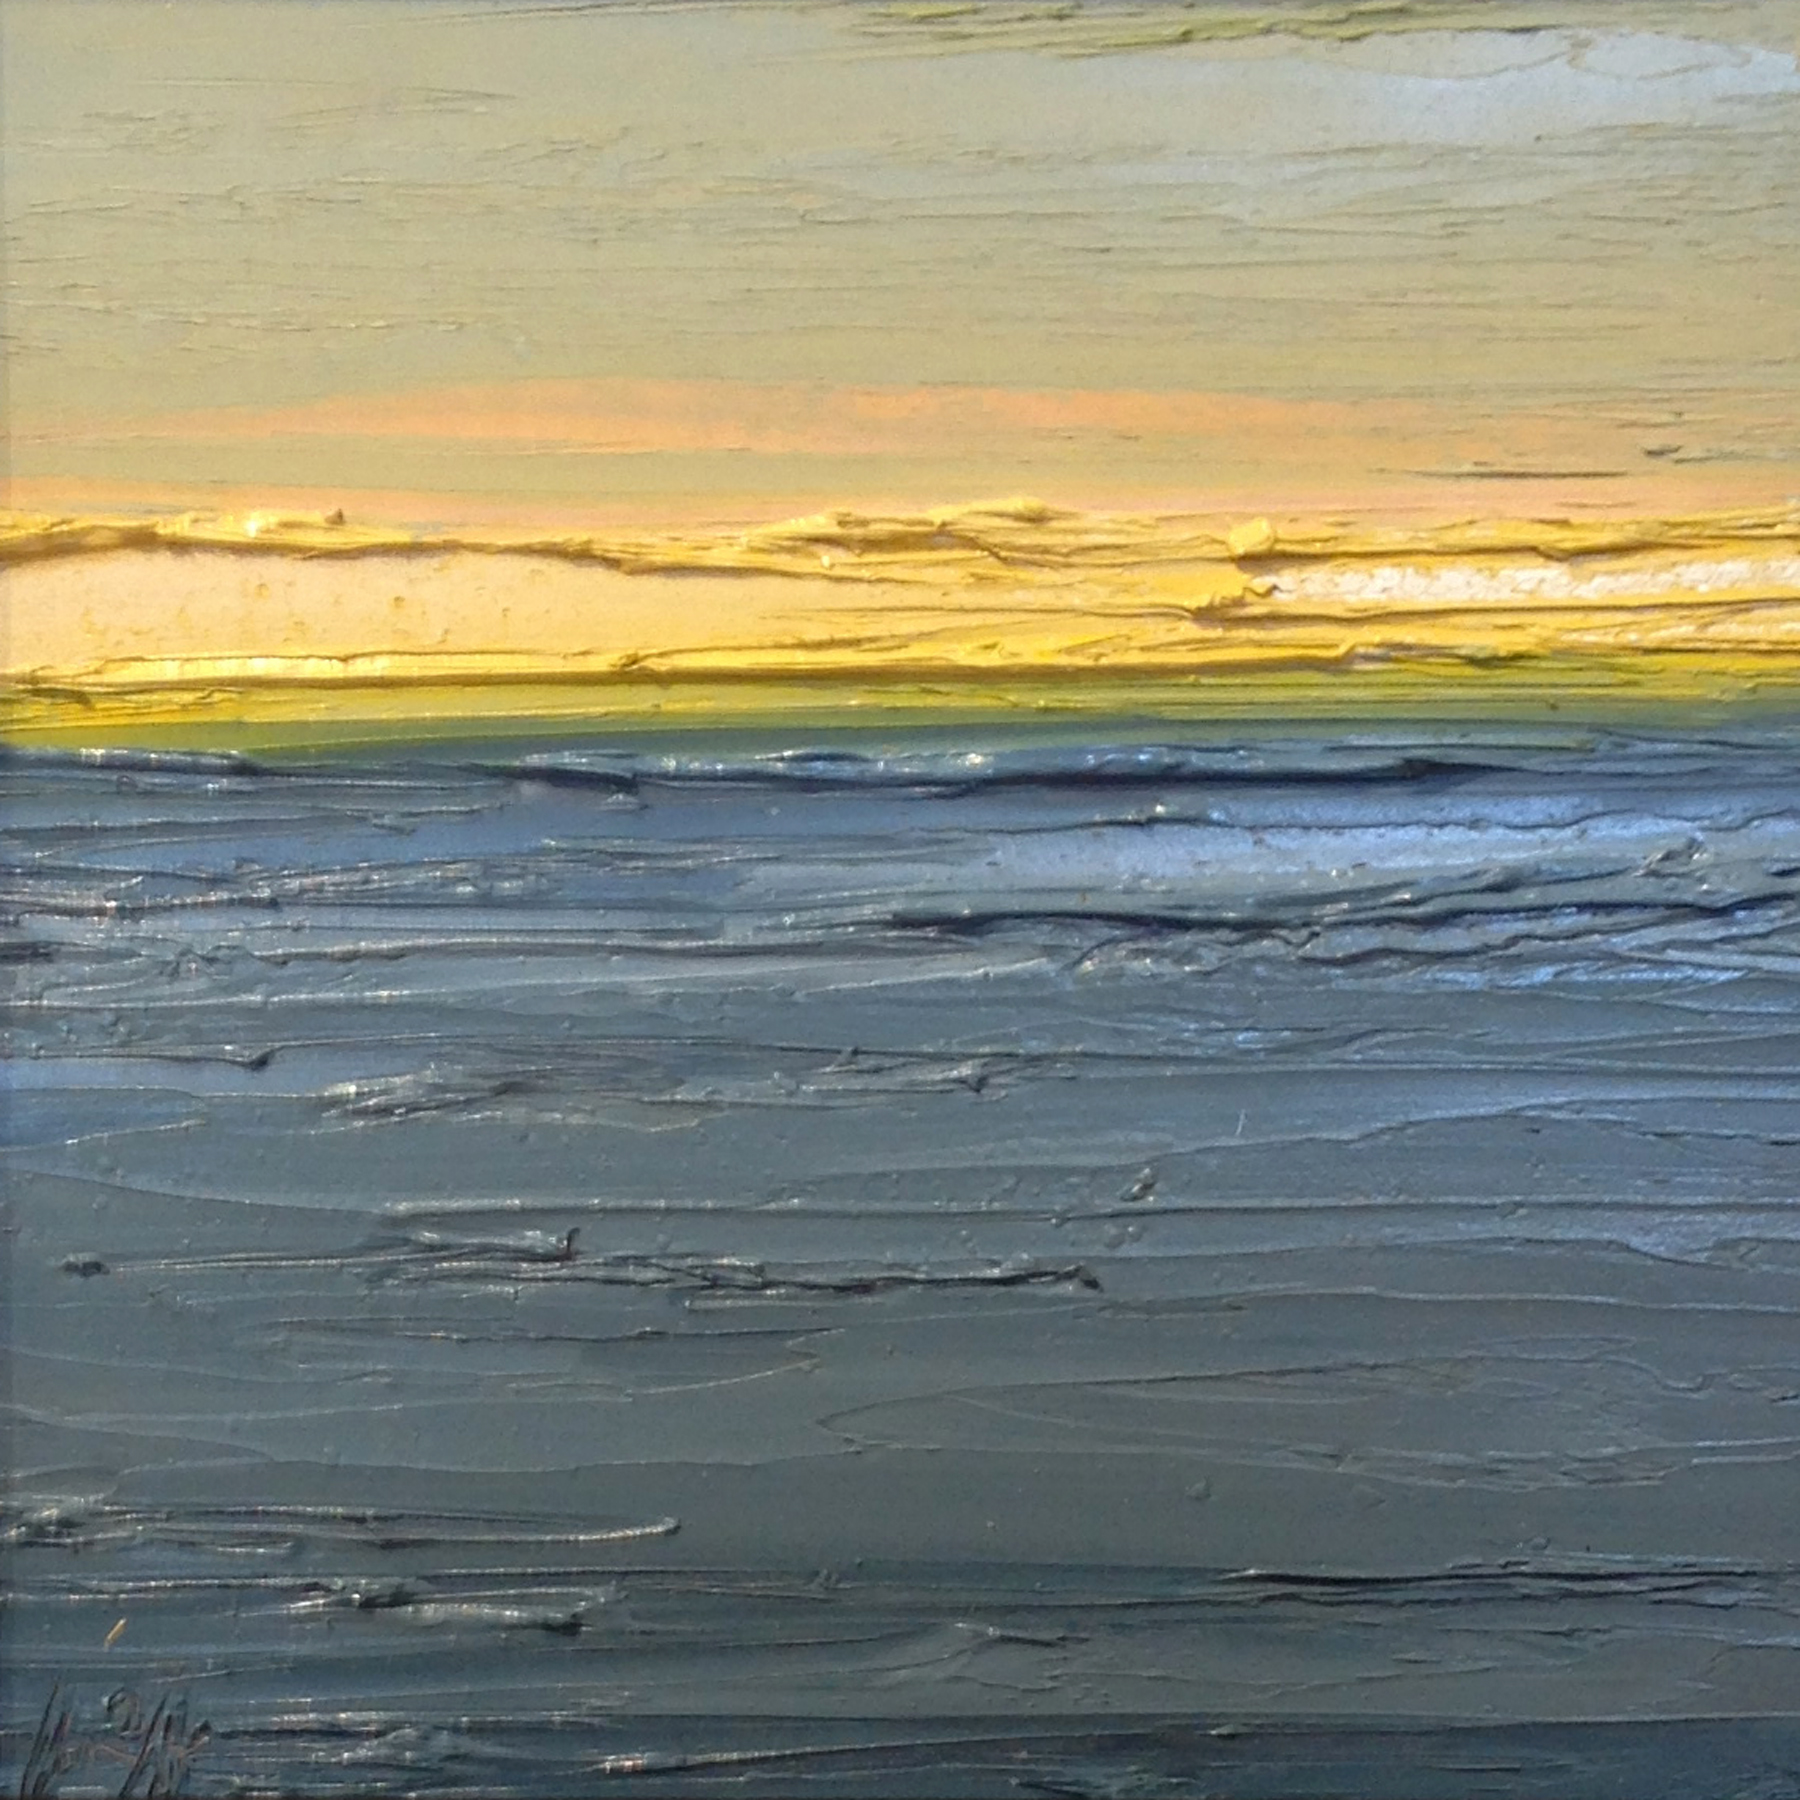 At The Horizon Study 3-13-2014, oil on board, 8 by 8 inches, 2014 - $750